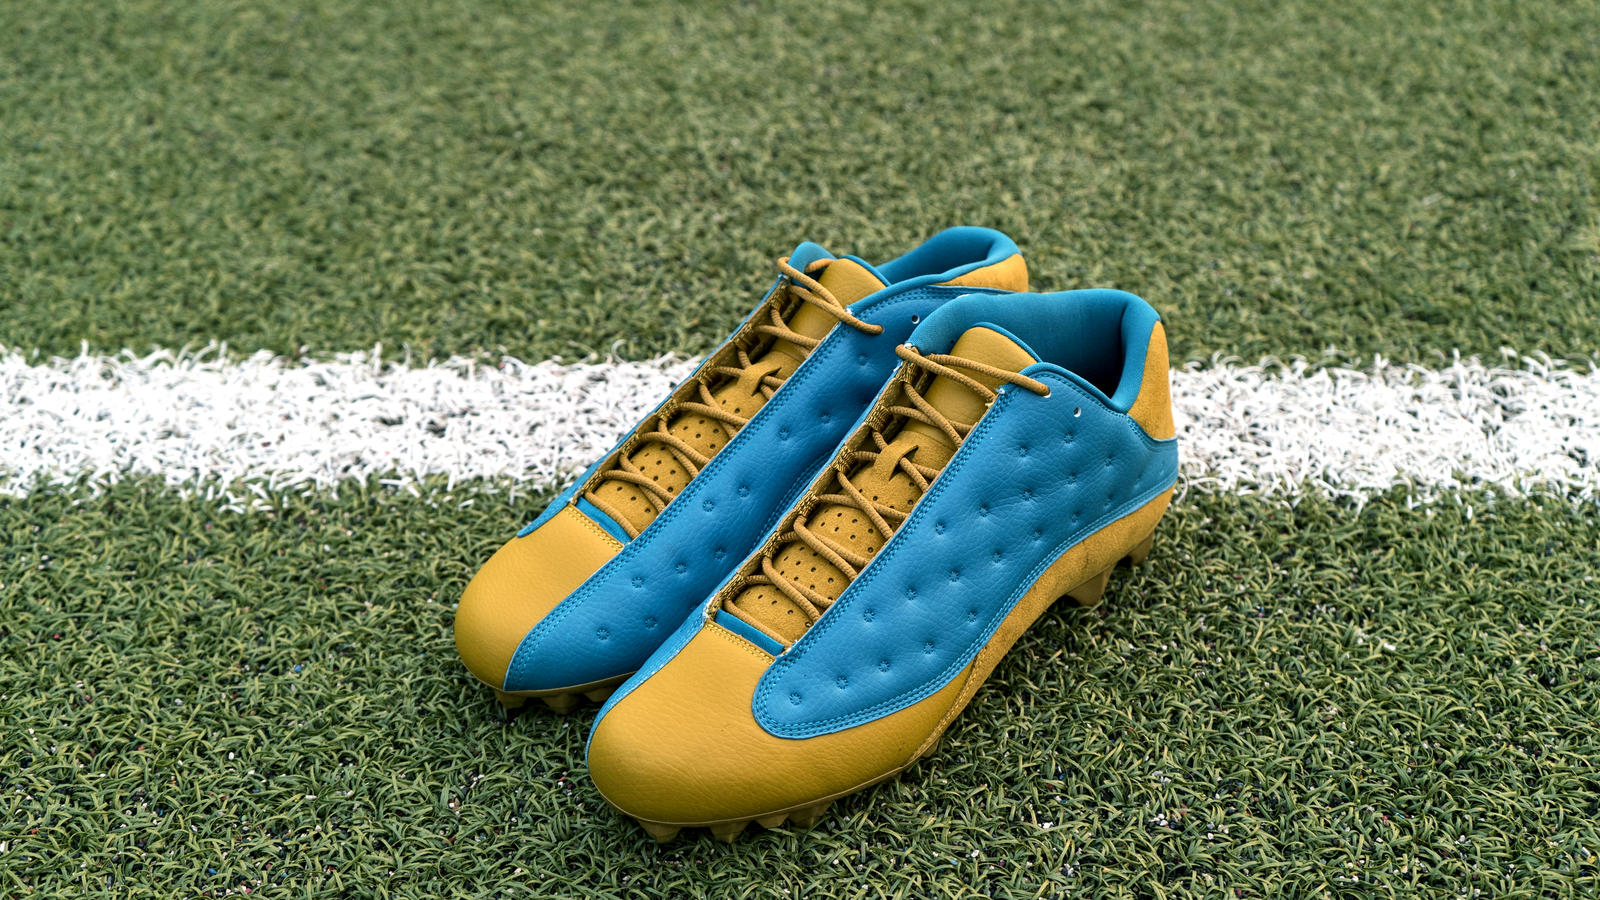 Jordan Brand's Football Roster Debuts New Air Jordan XIII PE Cleats 7